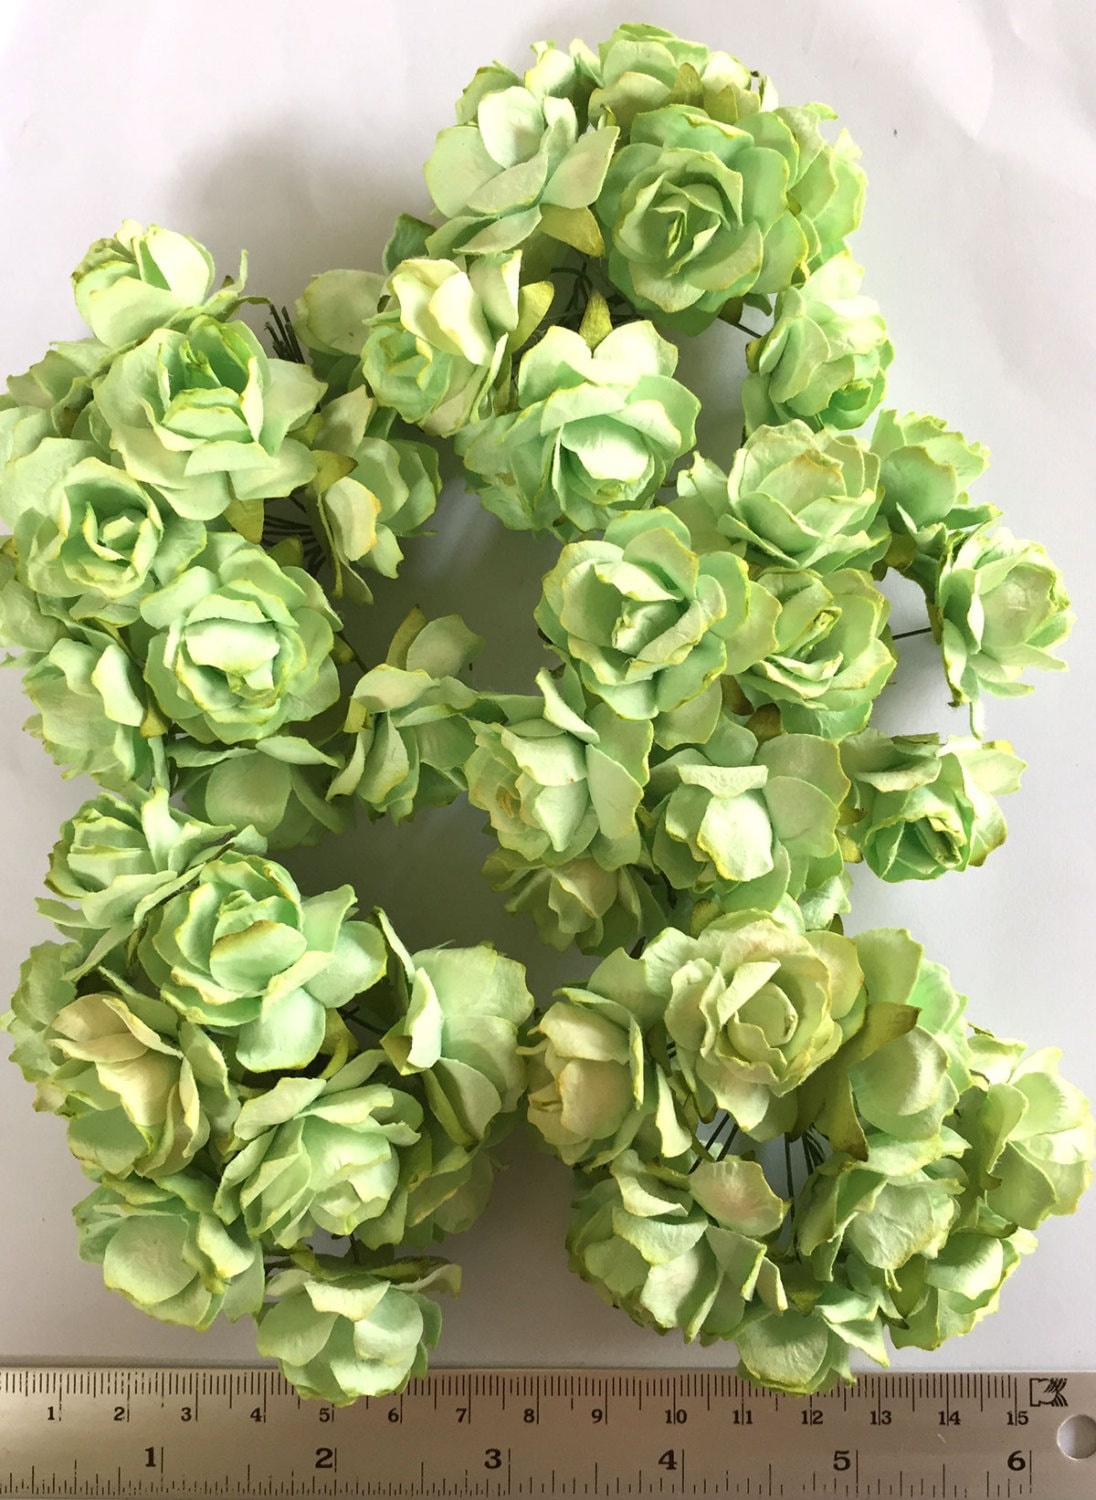 50 Mint Green Color Jumbo Mulberry Paper Flower Roses Size Etsy